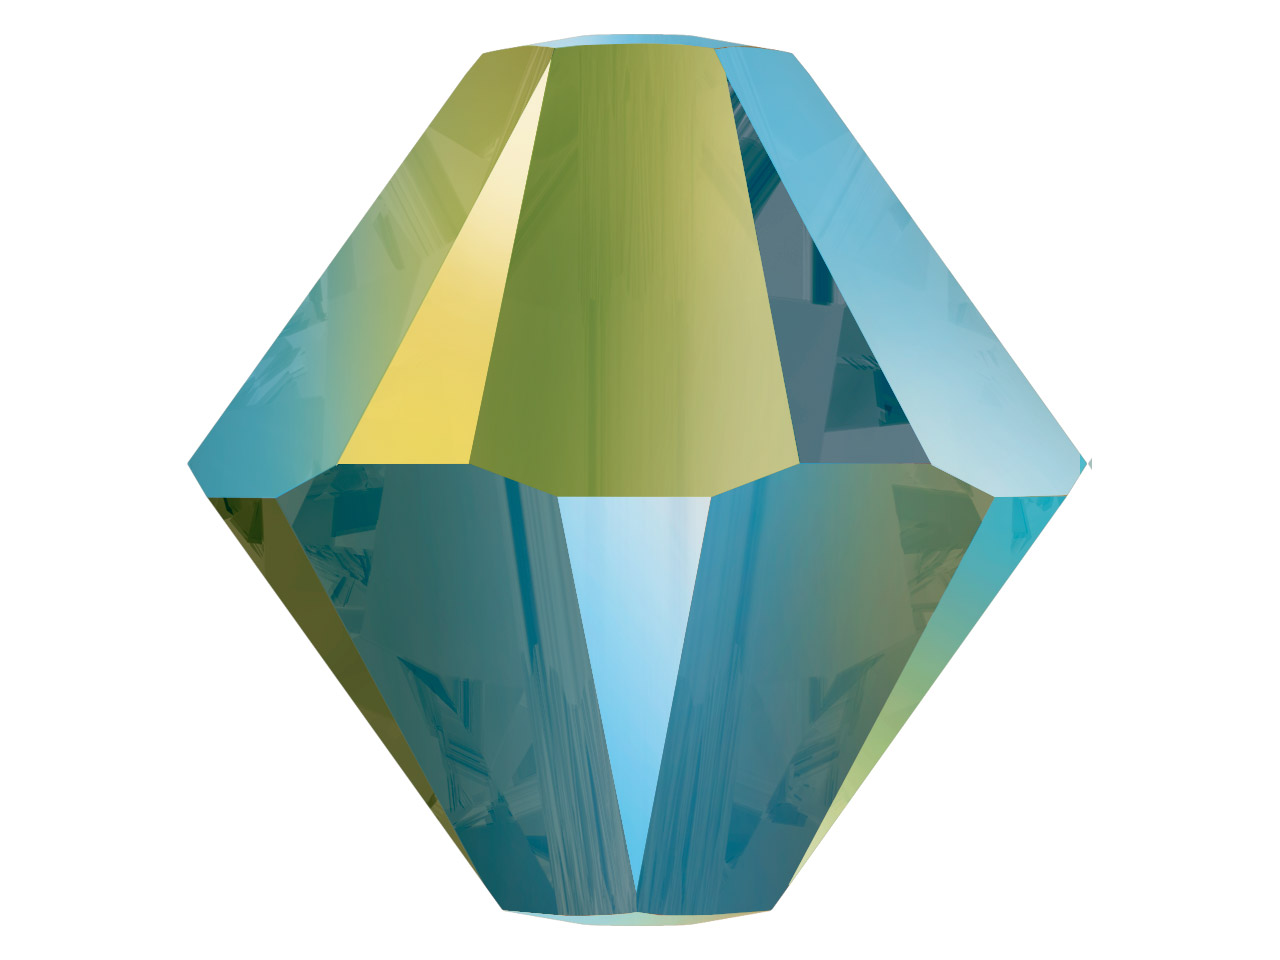 Swarovski Crystal Pack of 24       Bicone, 5328, 4mm, Crystal         Iridescent Green